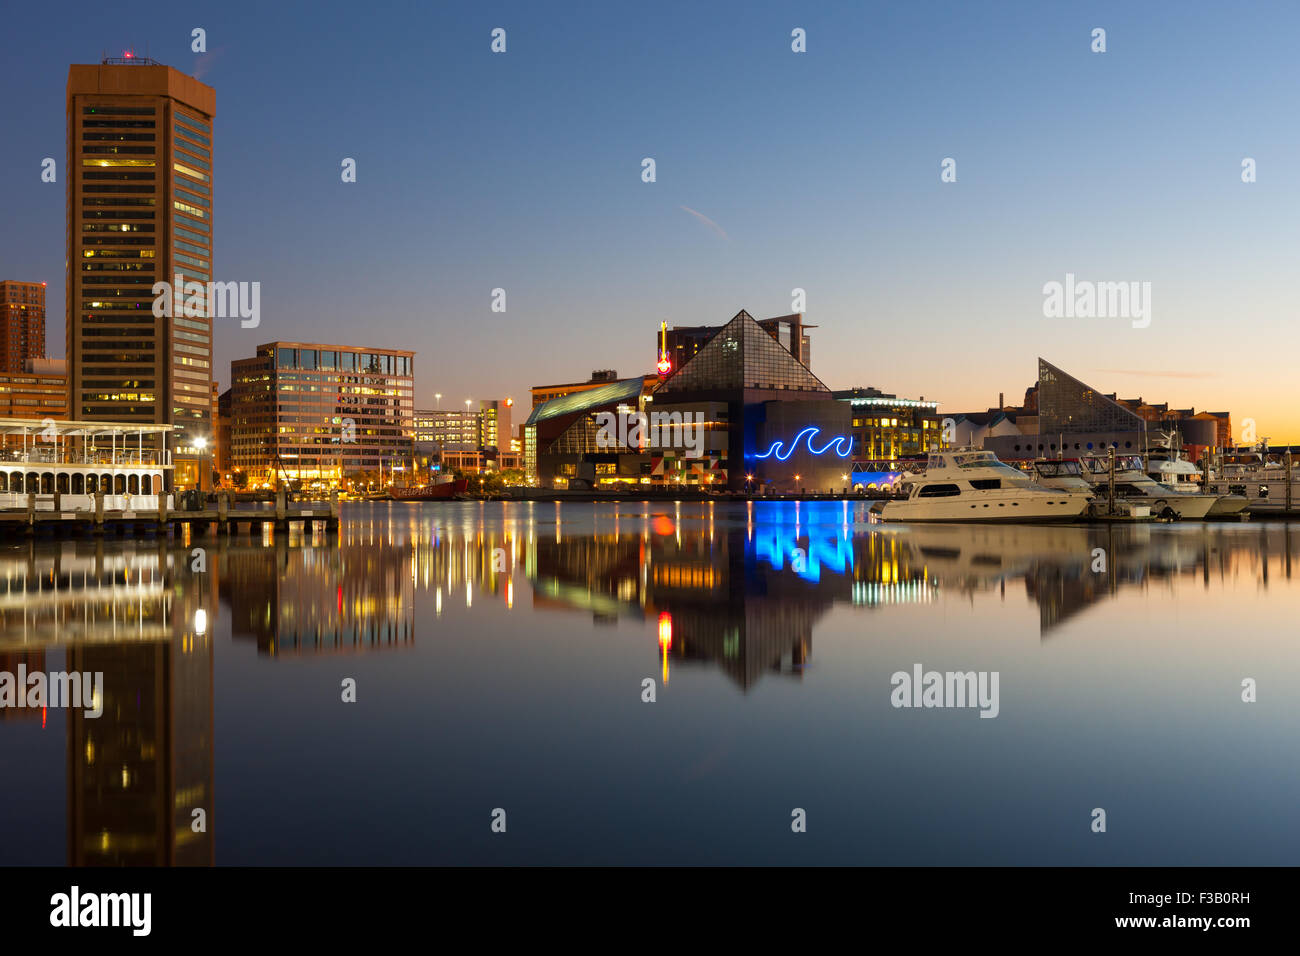 Baltimore skyline at dawn, including the World Trade Center and National Aquarium, reflected in the waters of the - Stock Image